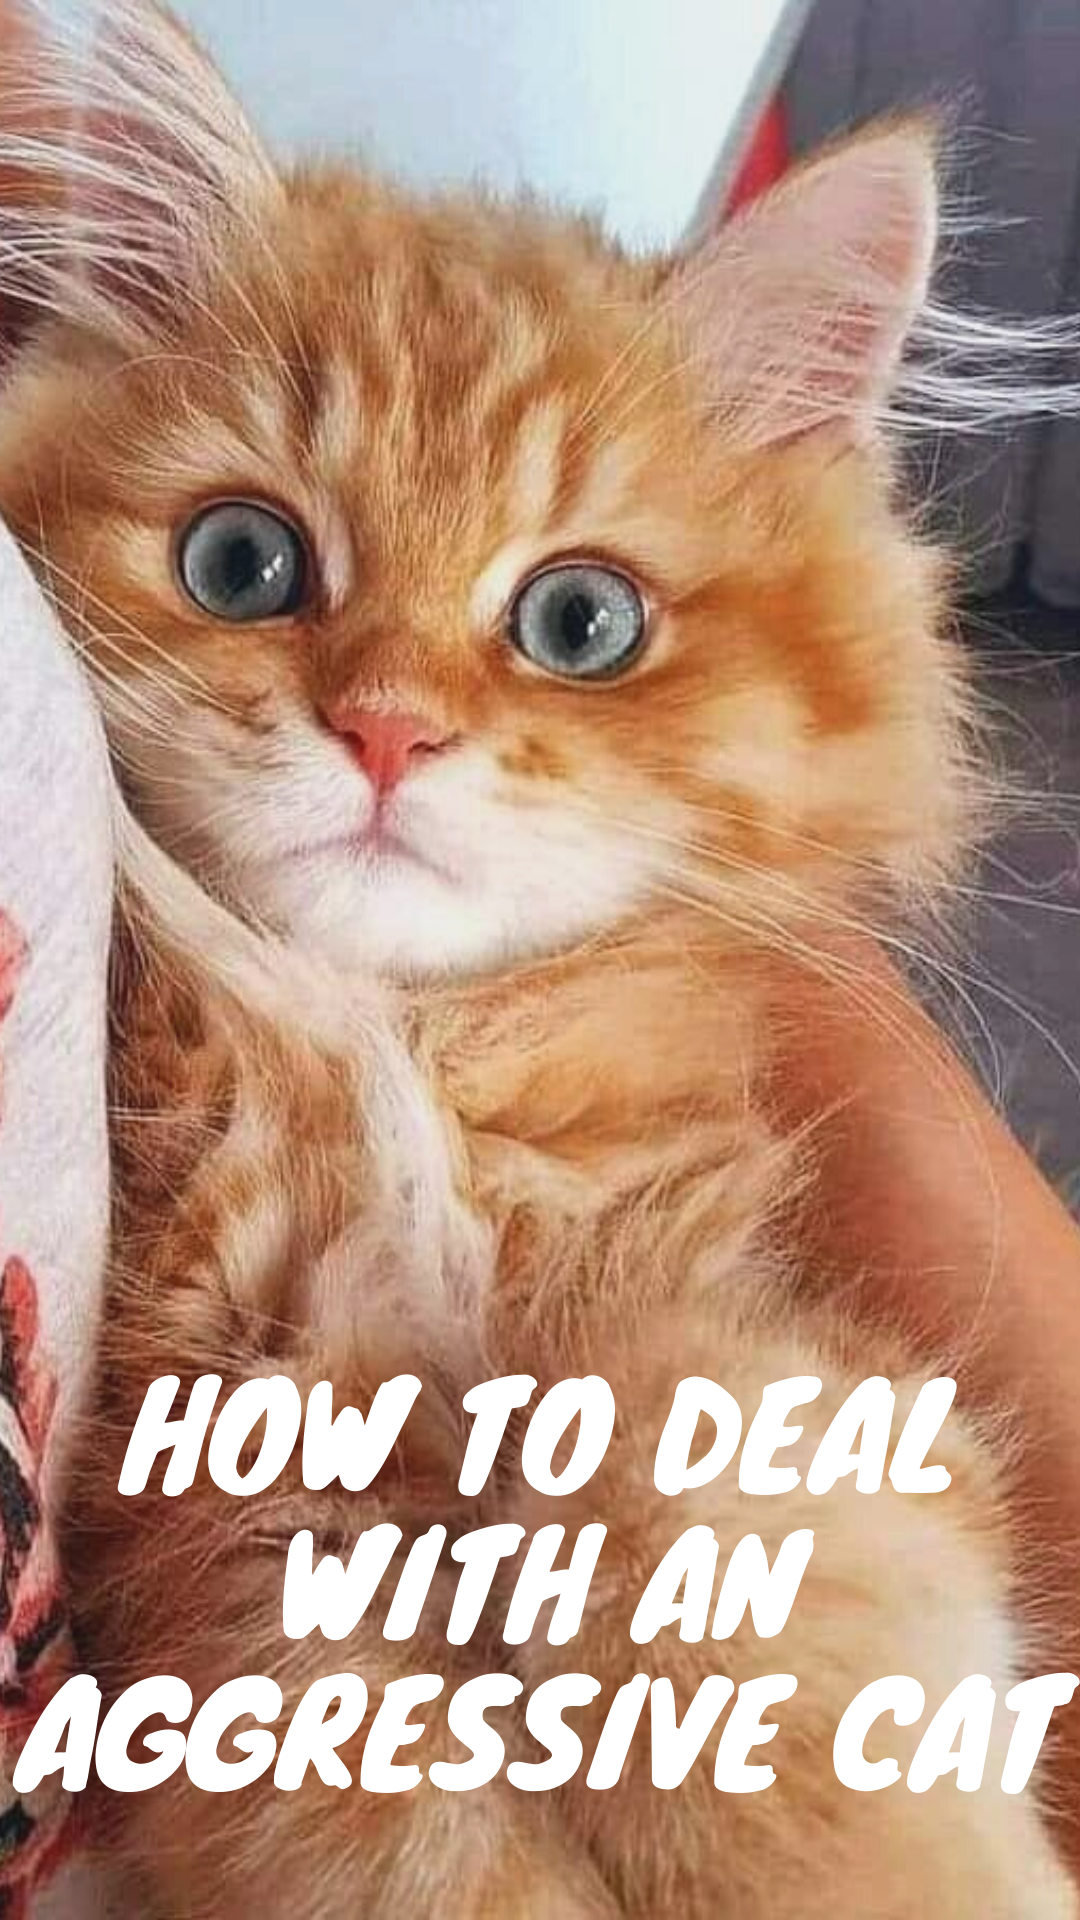 How To Deal With An Aggressive Cat In 2020 Cats Animal Jokes Cats And Kittens